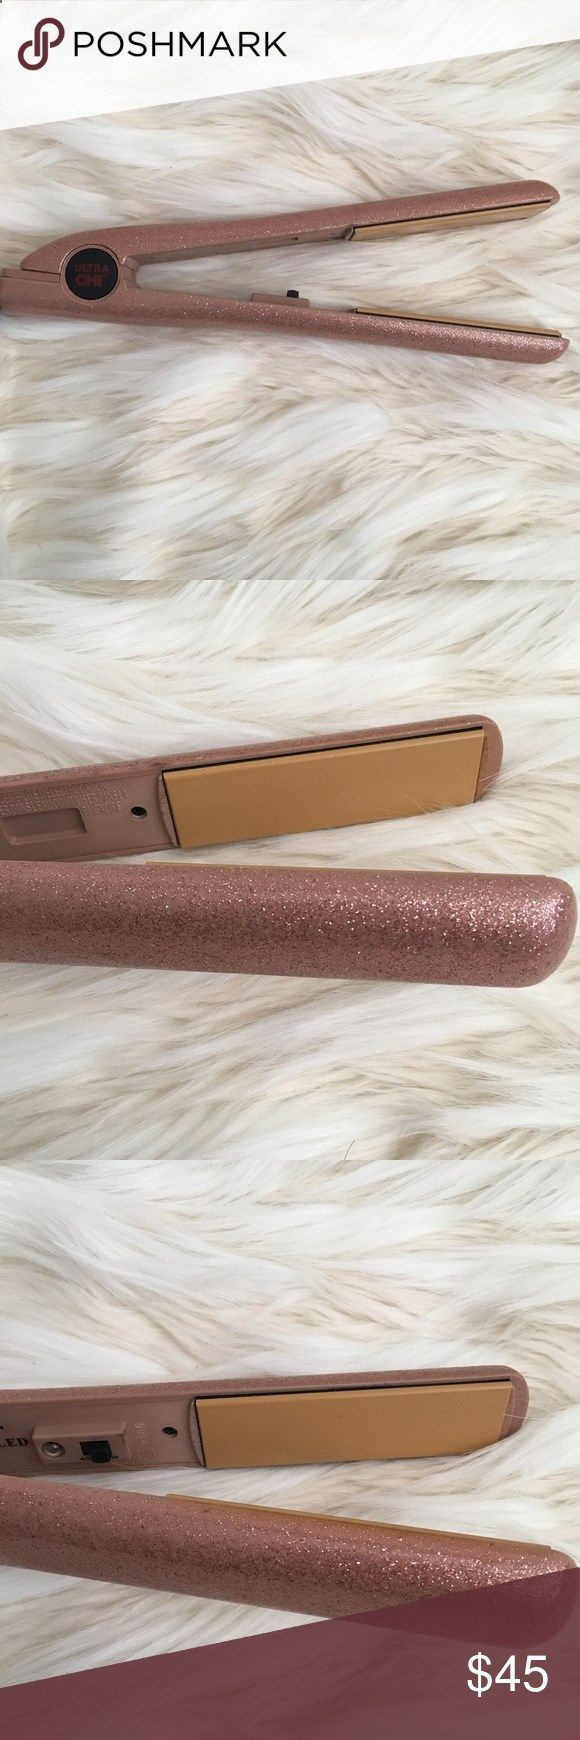 Ulta Chi Hair Straightener Sparkly pink Chi hair straightener! Works great, in good condition, no scratches on the plates but a little wearing on the inside edges. Got a Karmin so selling this beauty to a good home! Chi Other